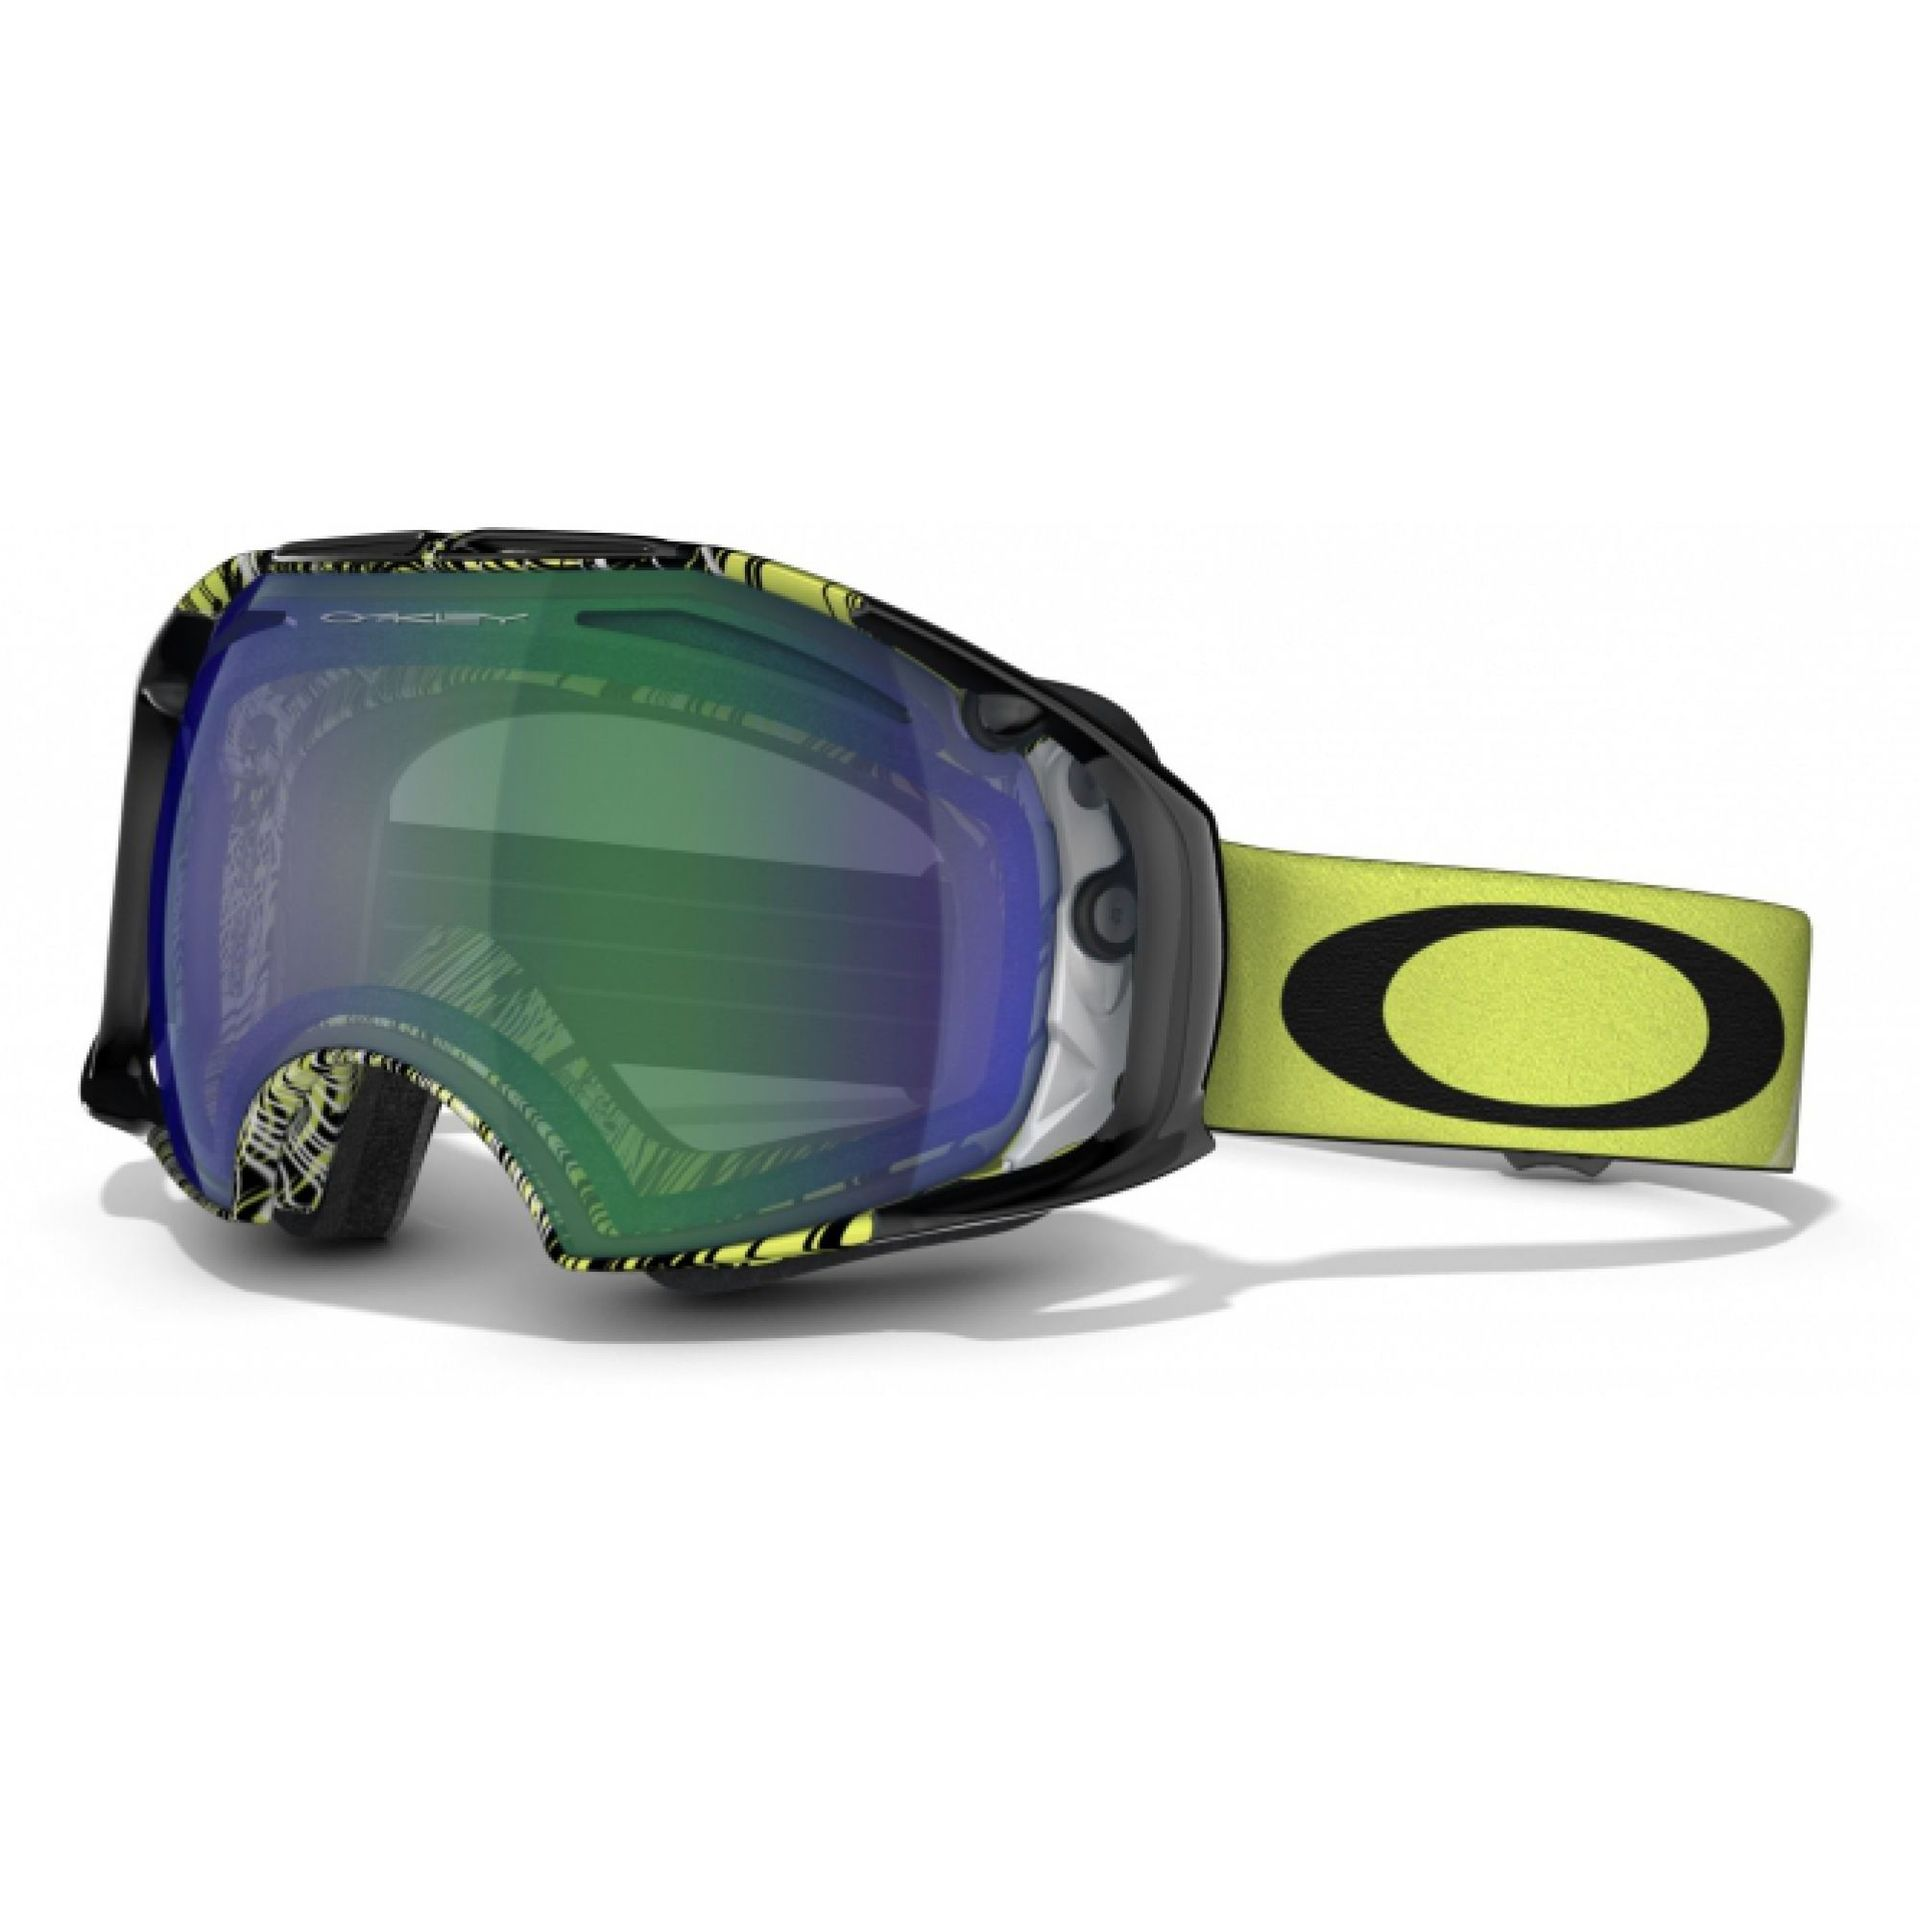 GOGLE OAKLEY AIRBRAKE TOPOGRAPY LIME JADE+PERSIMMON 1